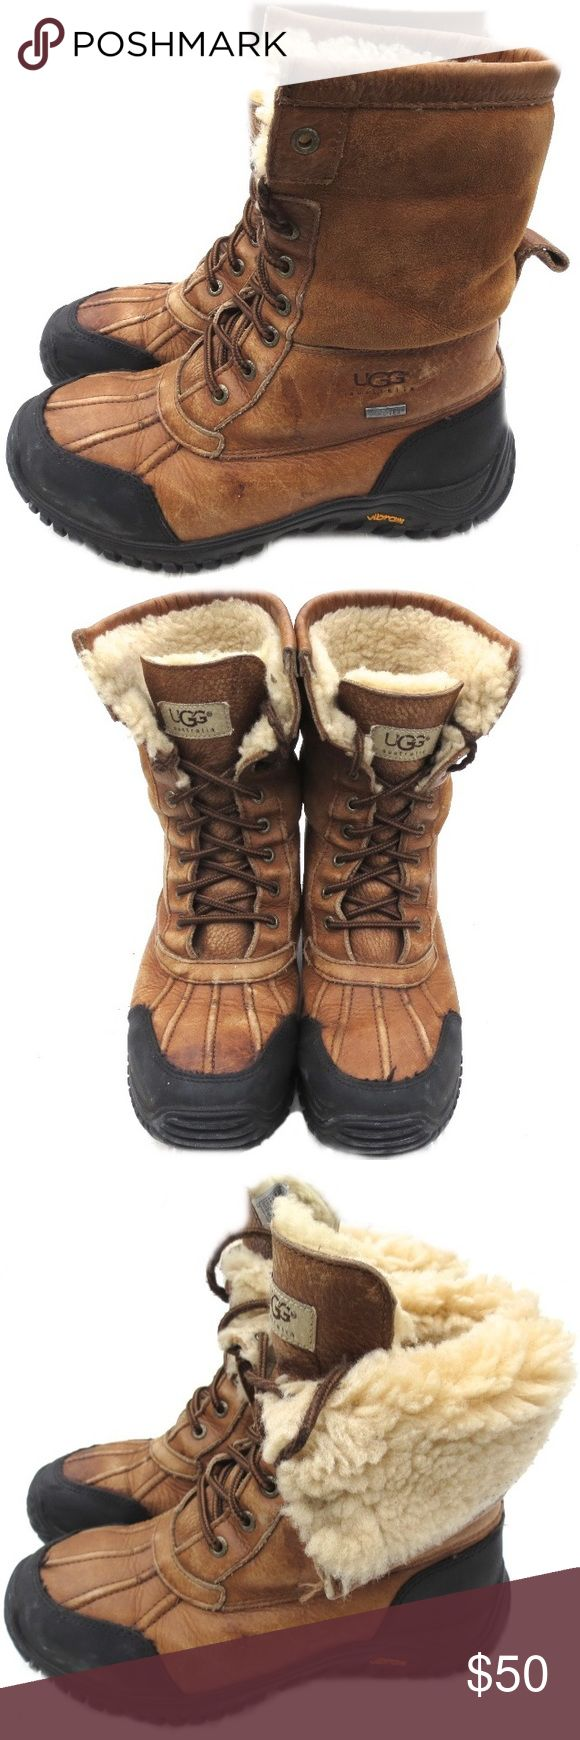 UGG Adirondack Leather Boots UGG Adirondack leather boots. Genuine brown leather. Size 8. They are in pre-owned condition with normal wear and tear. There are small scuff marks and darkened areas of the leather. Retails for $225.00! UGG Shoes Winter & Rain Boots